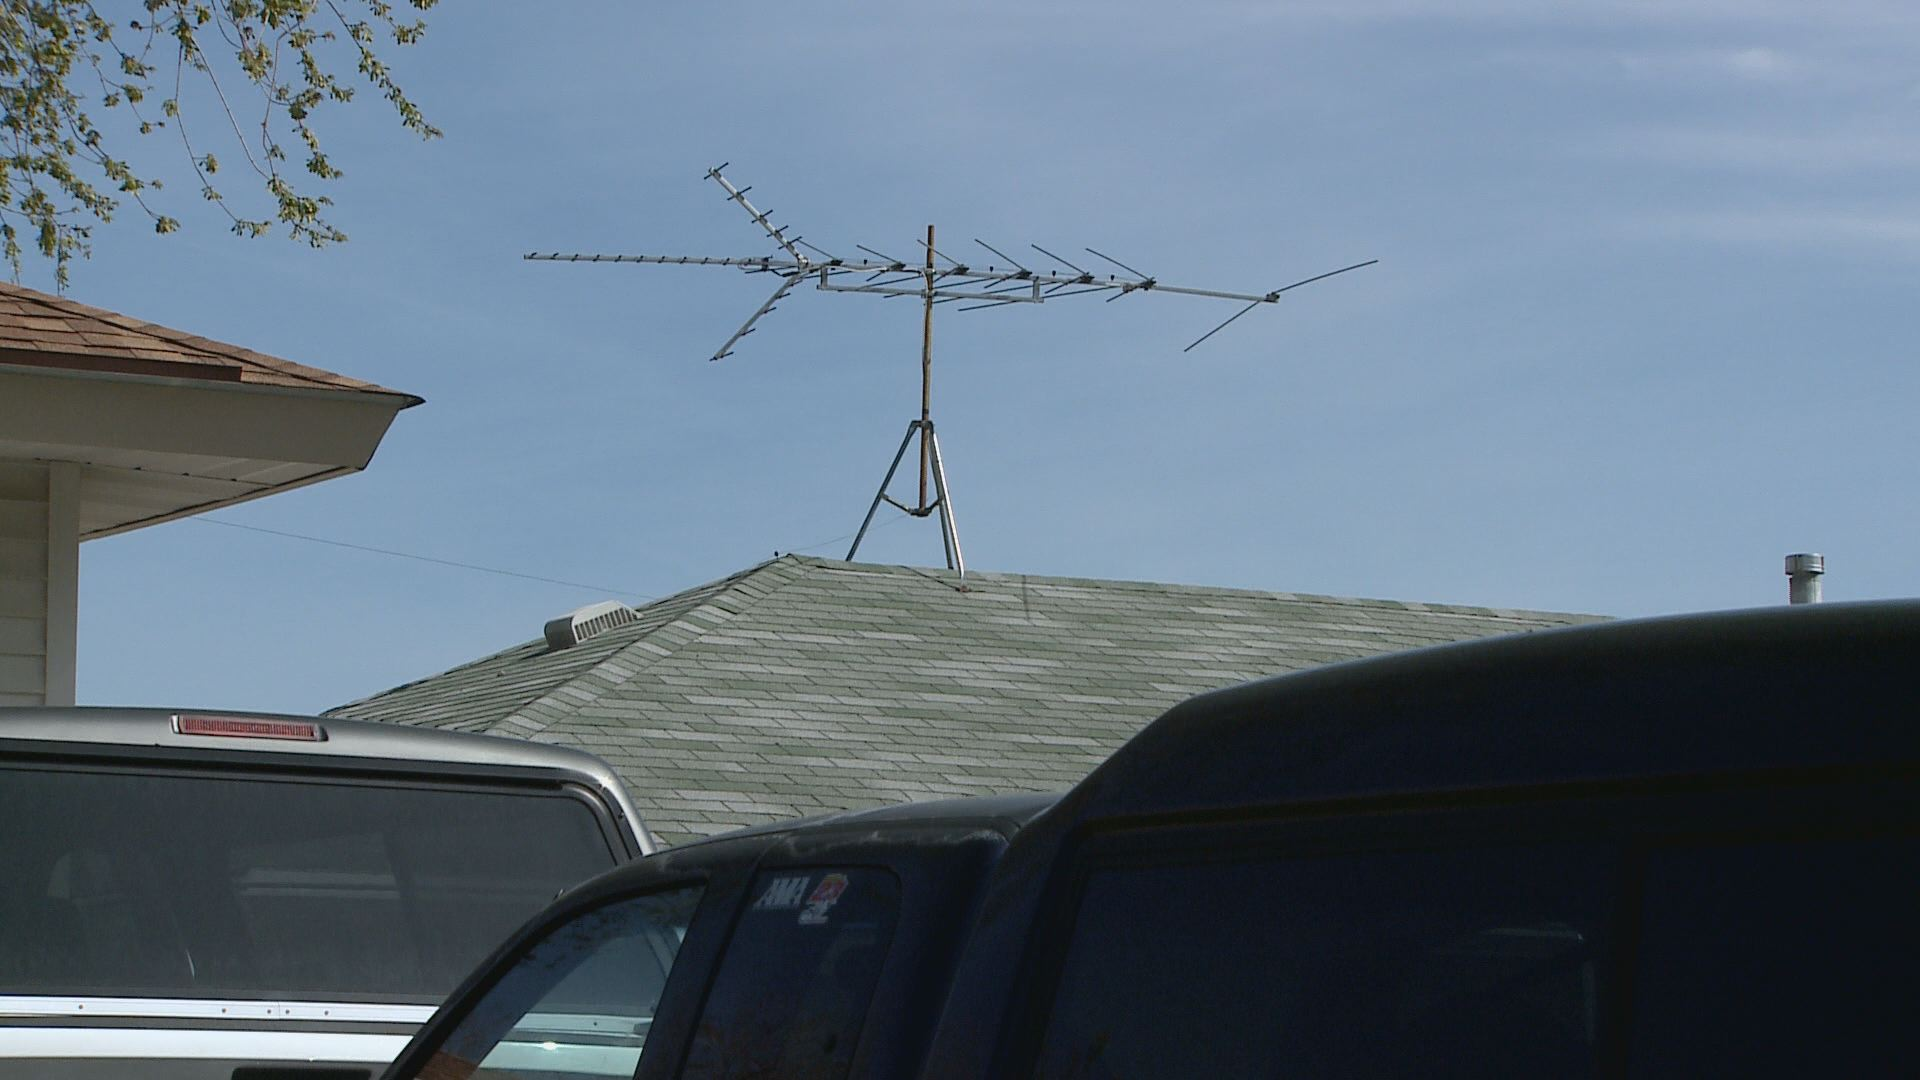 Kare11.com | How To Receive KARE 11 With An Over The Air Antenna